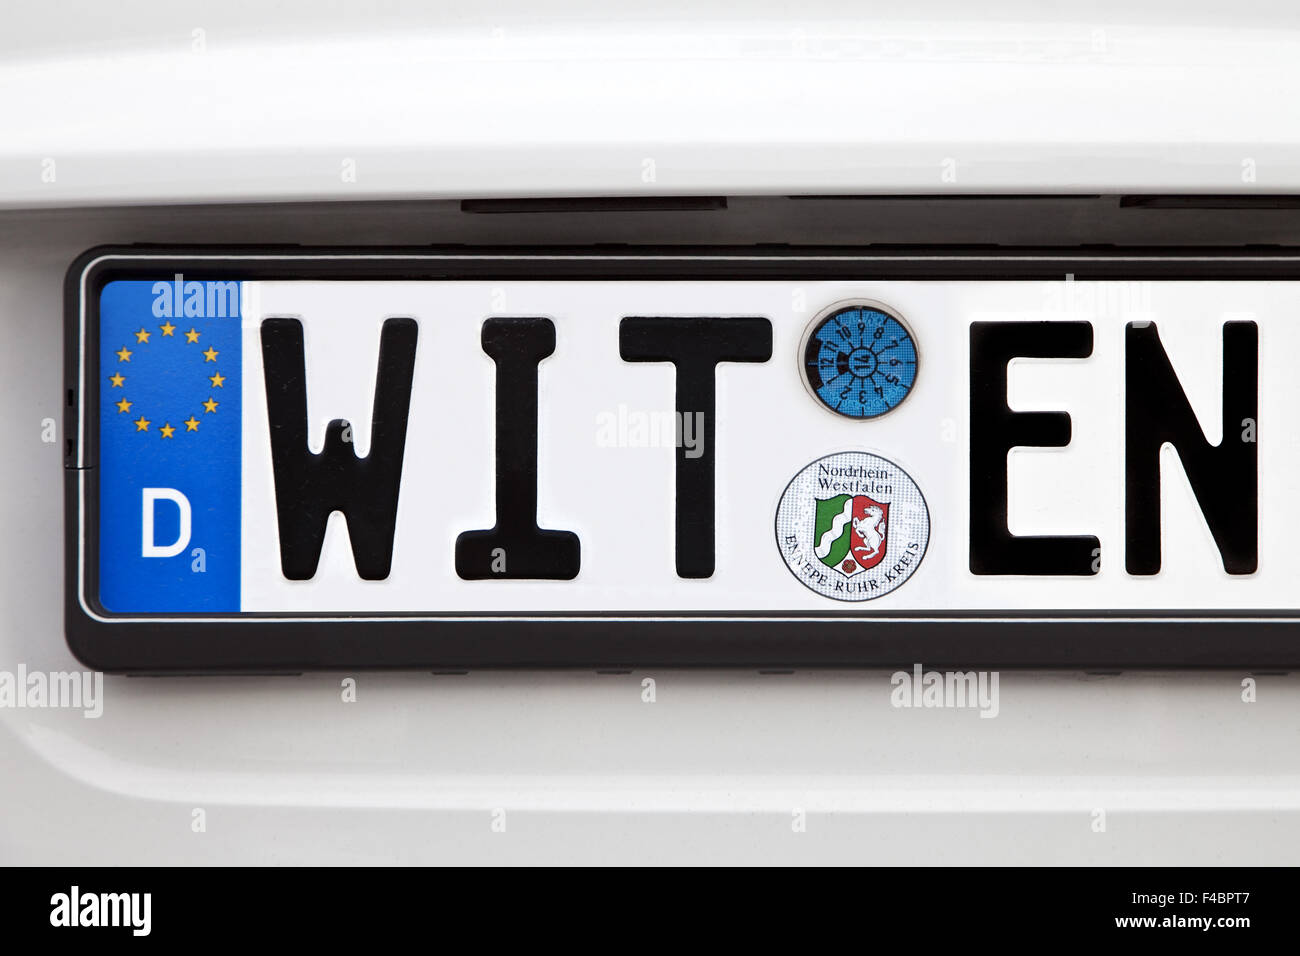 Car license plate WIT EN, Witten, Germany - Stock Image